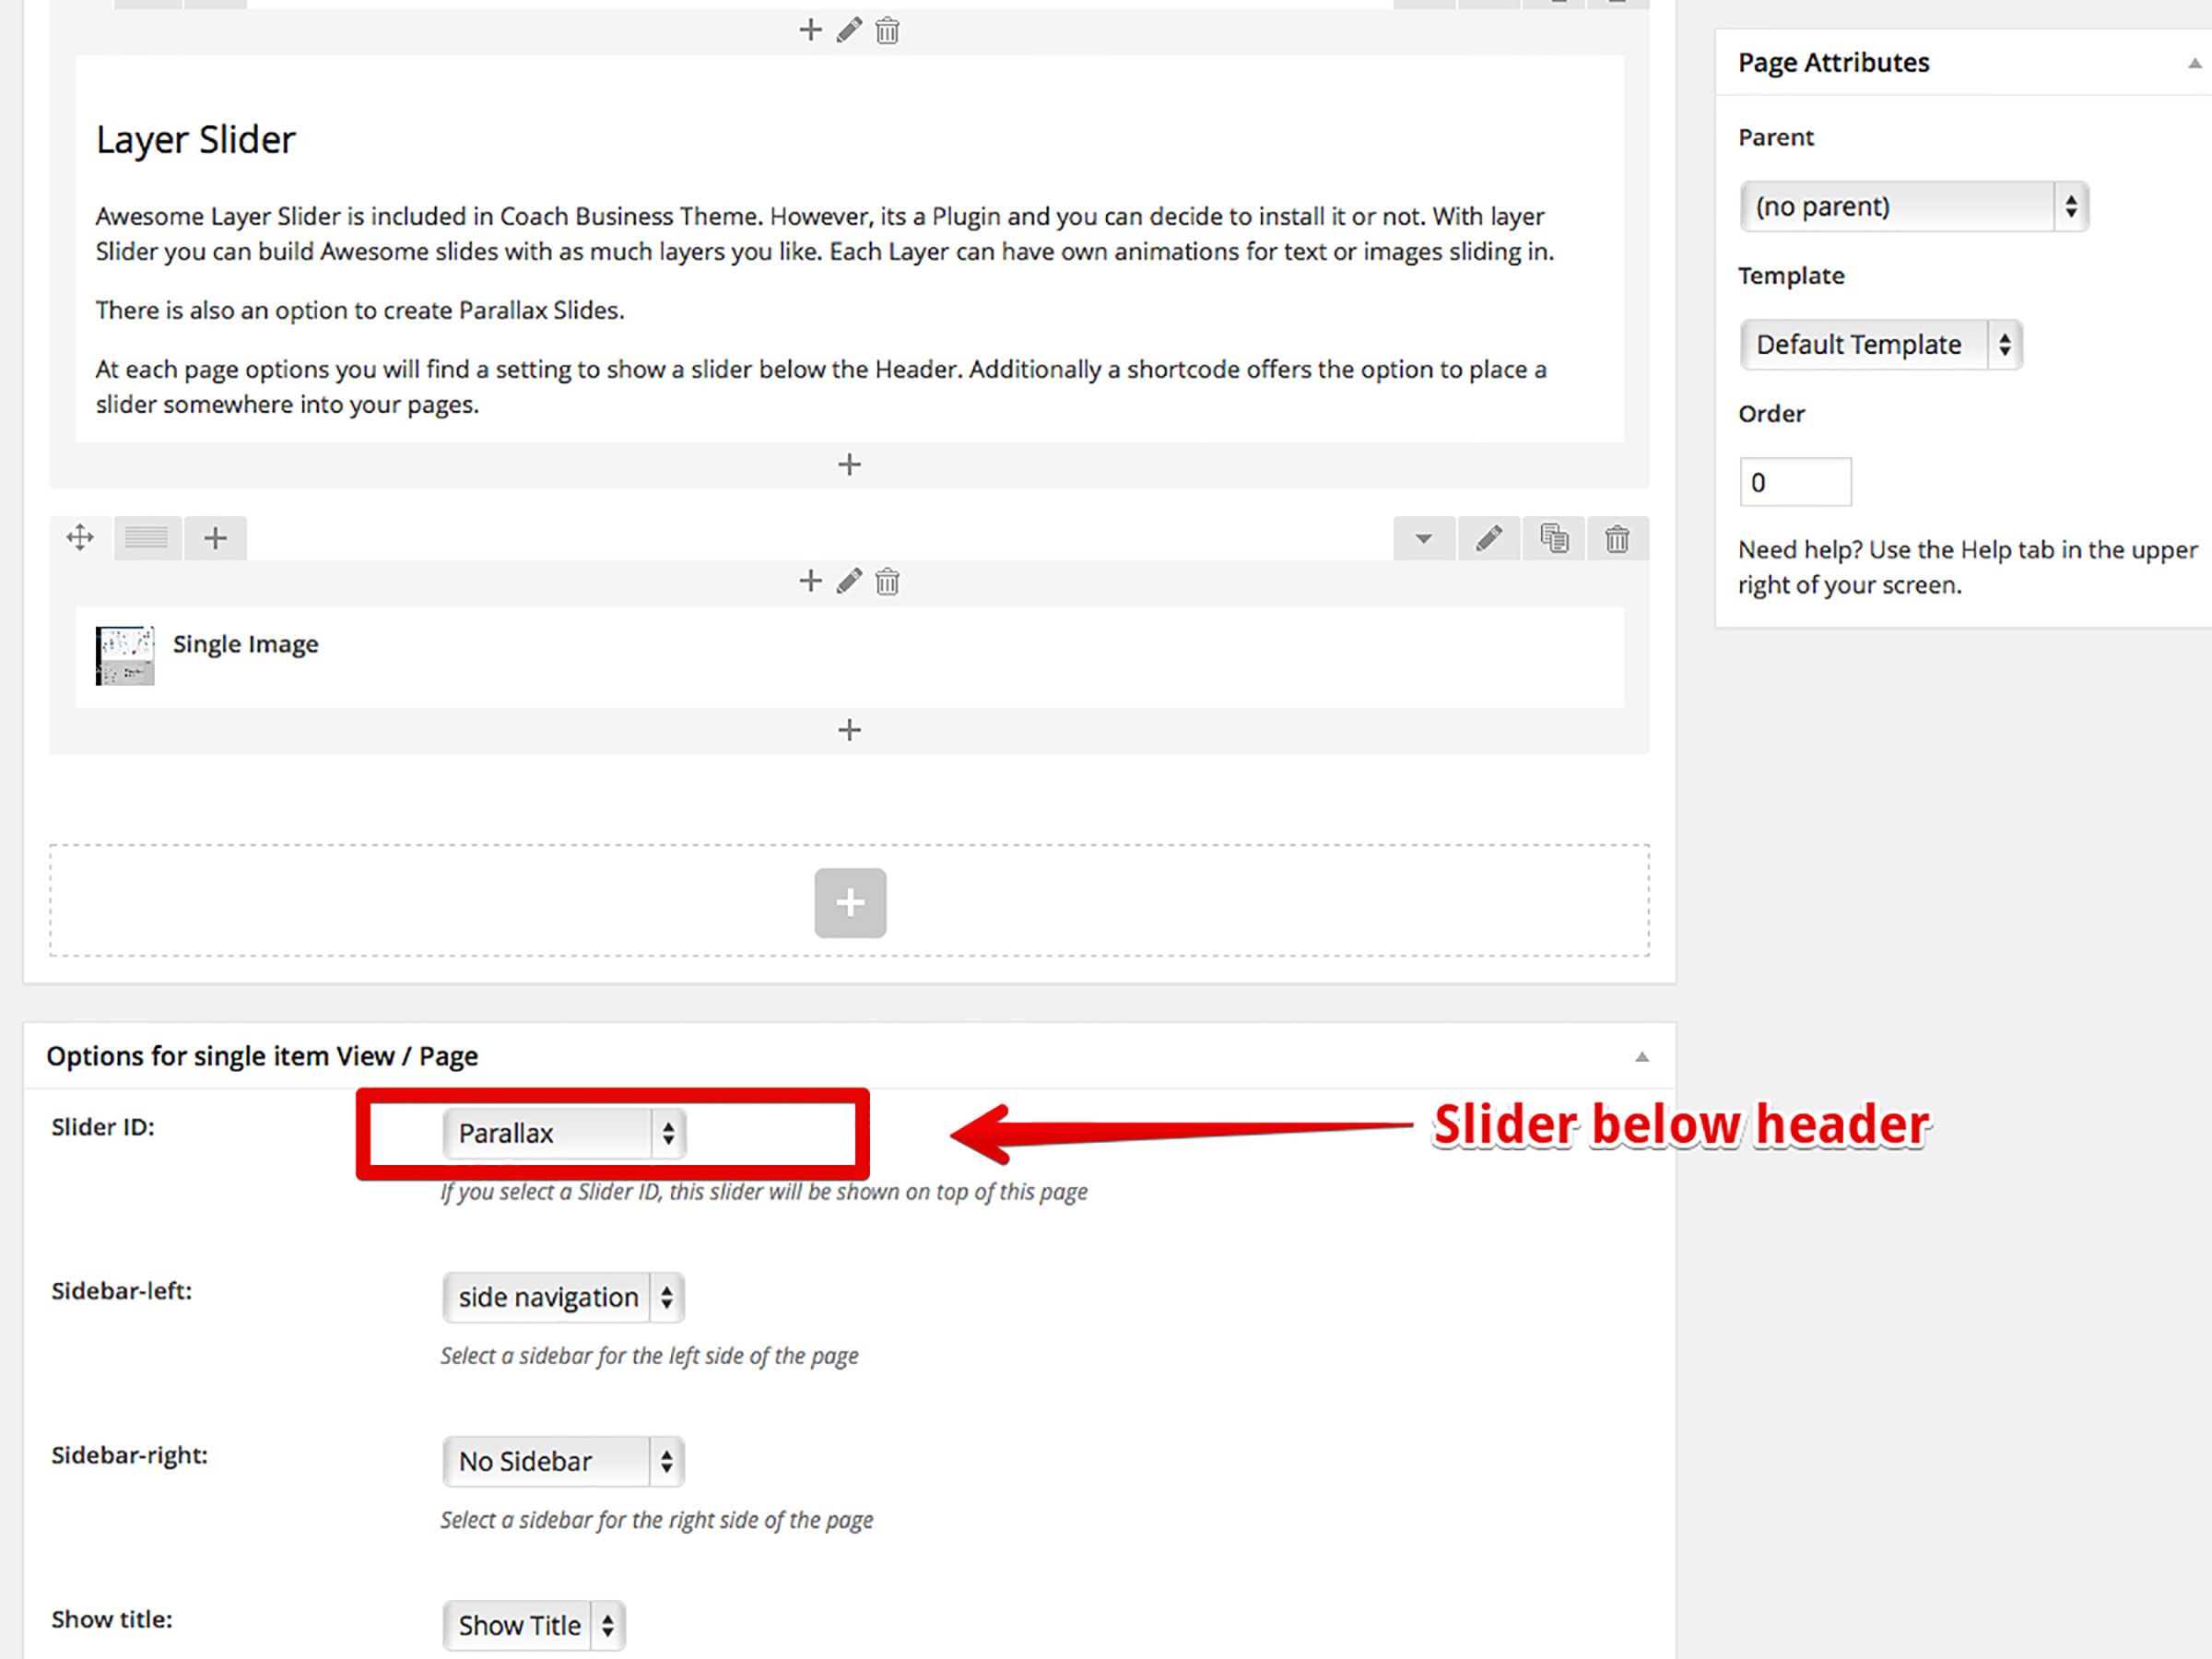 Slider setting in Page options